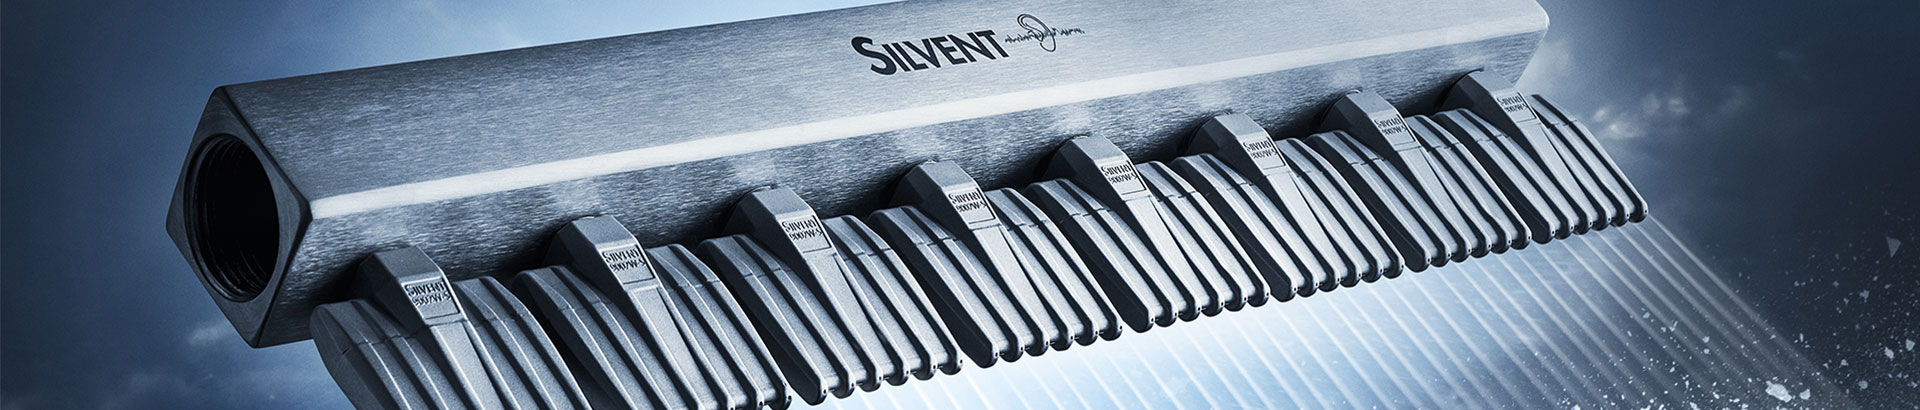 Silvent air knife with air jets on gray background